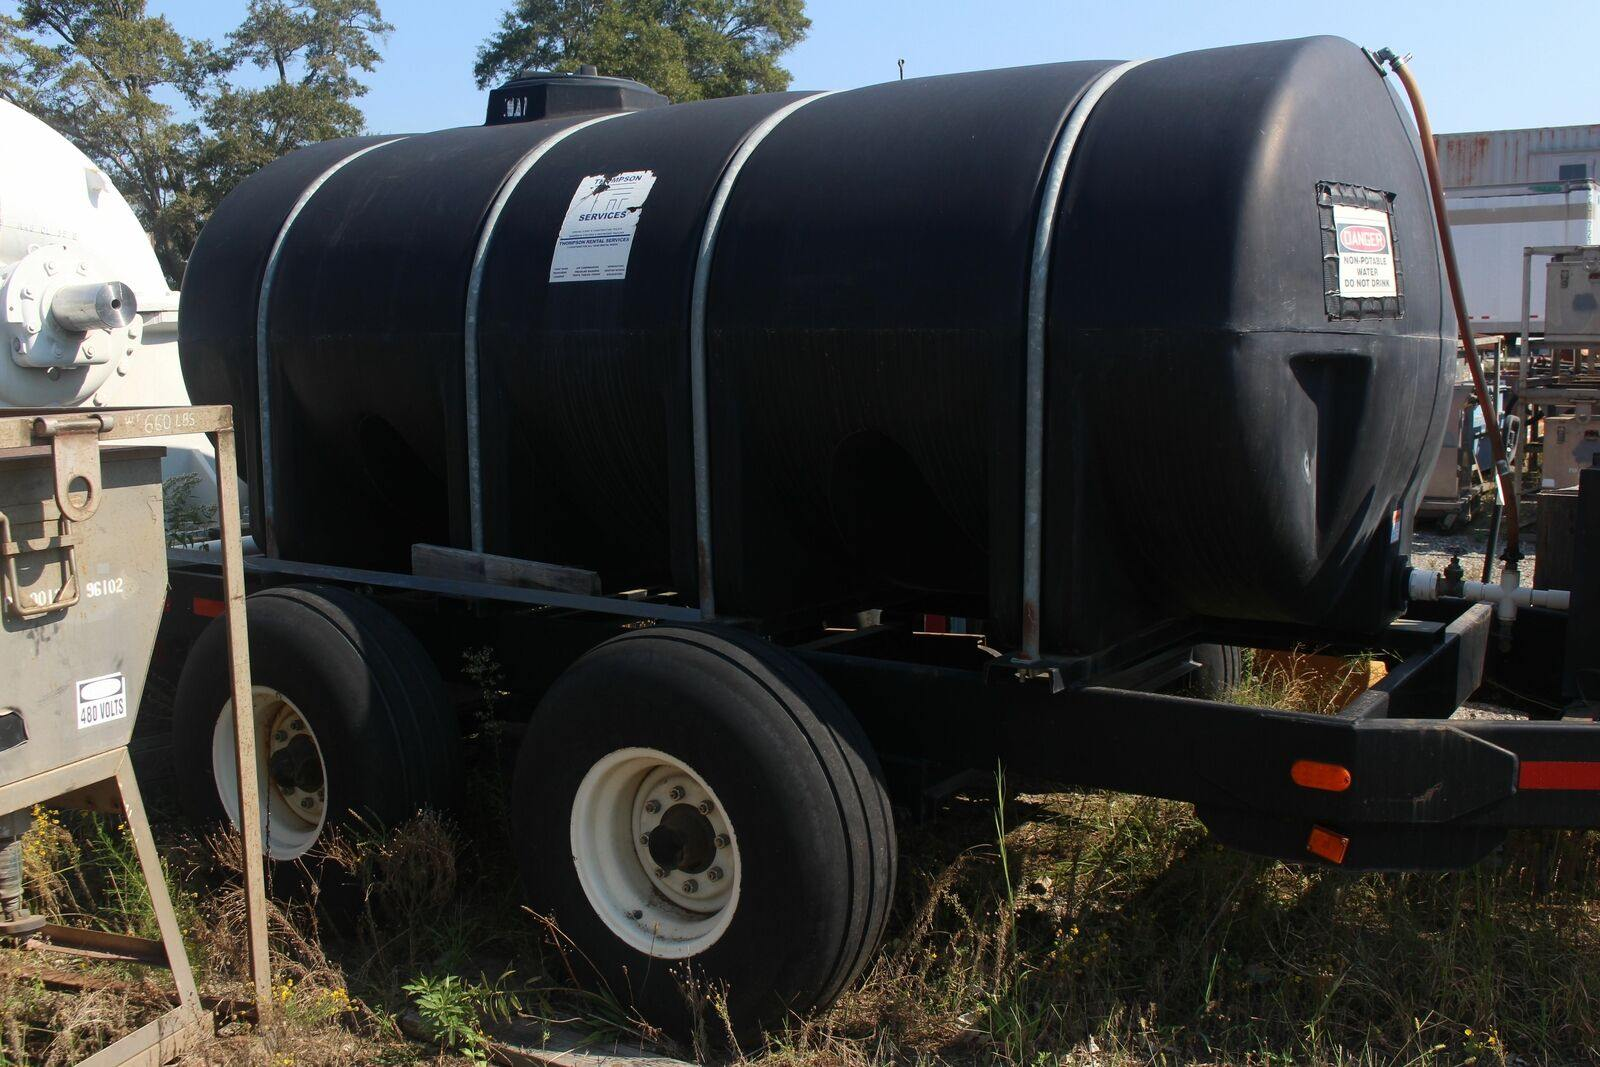 1625 Gallon Black Horizontal Leg Tank Non-Potable Water Tank Trailer